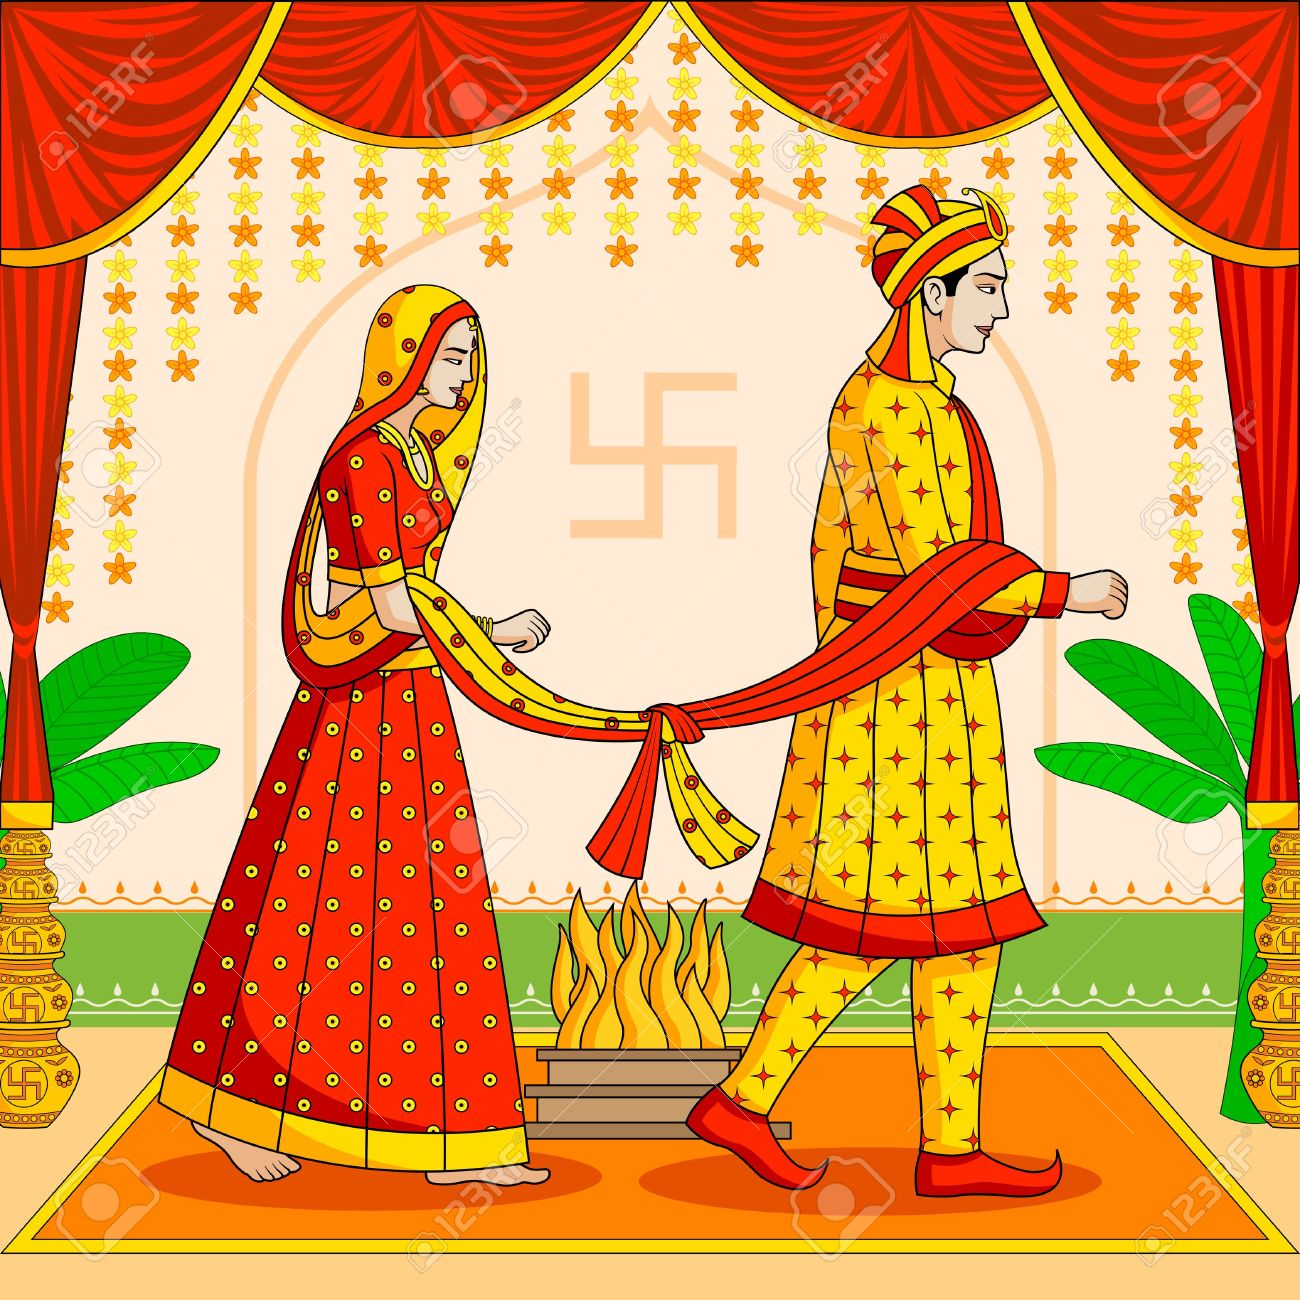 pin K.o.p.e.l. clipart indian wedding #8 - Indian Dulha Dulhan PNG